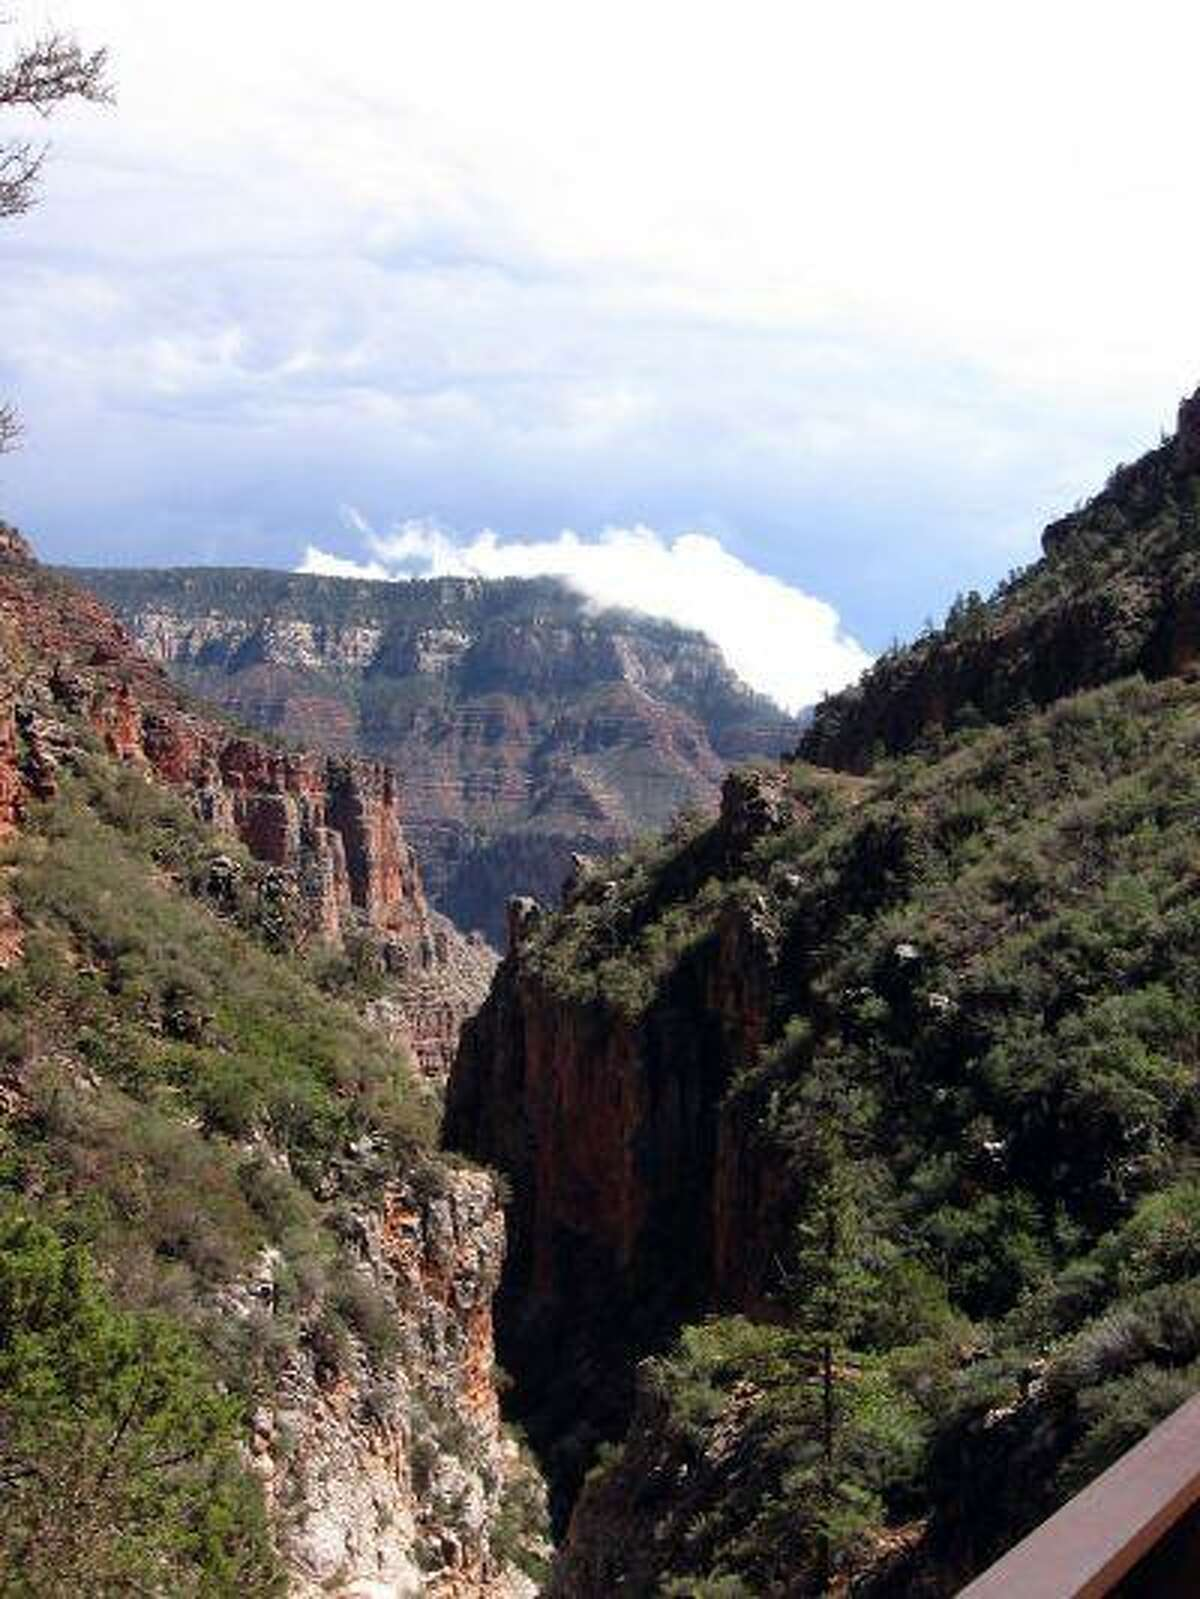 Officials at Grand Canyon National Park in Arizona are warning of delays in processing back-country permits and longer lines to get into the park as a result of budget cuts required by sequestration.(Washington Post photo by John Deiner).